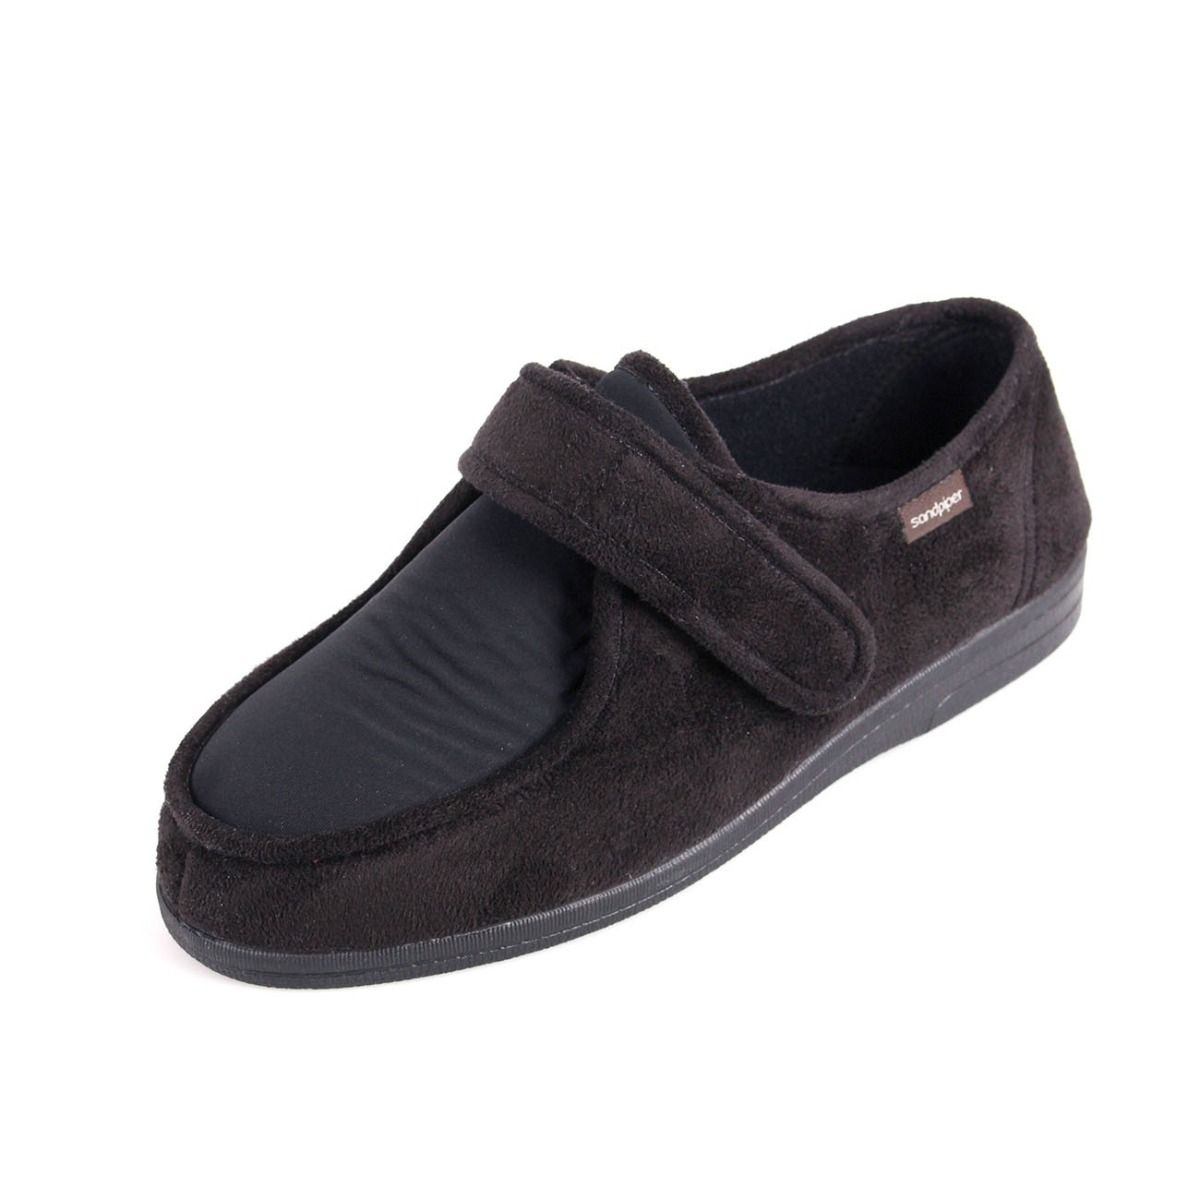 Men's Extra Wide Stretchy Slippers